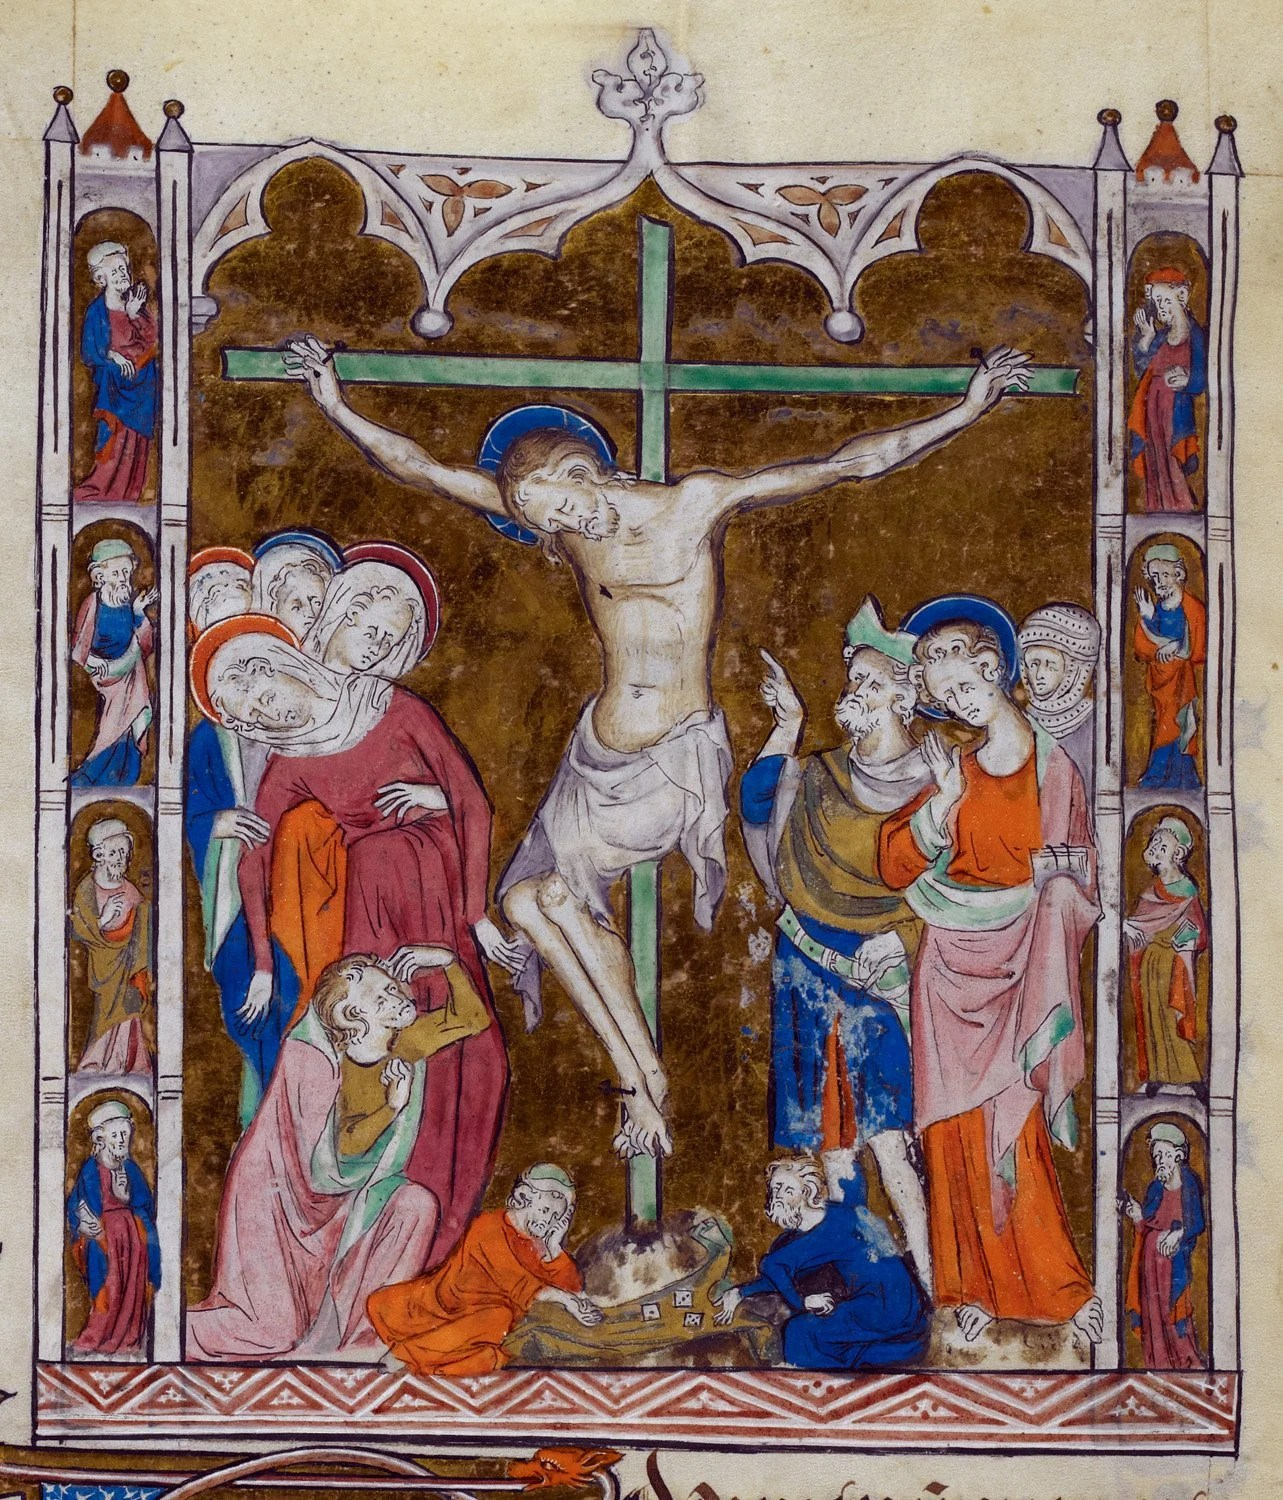 Crucifixion of Jesus in Medieval Art